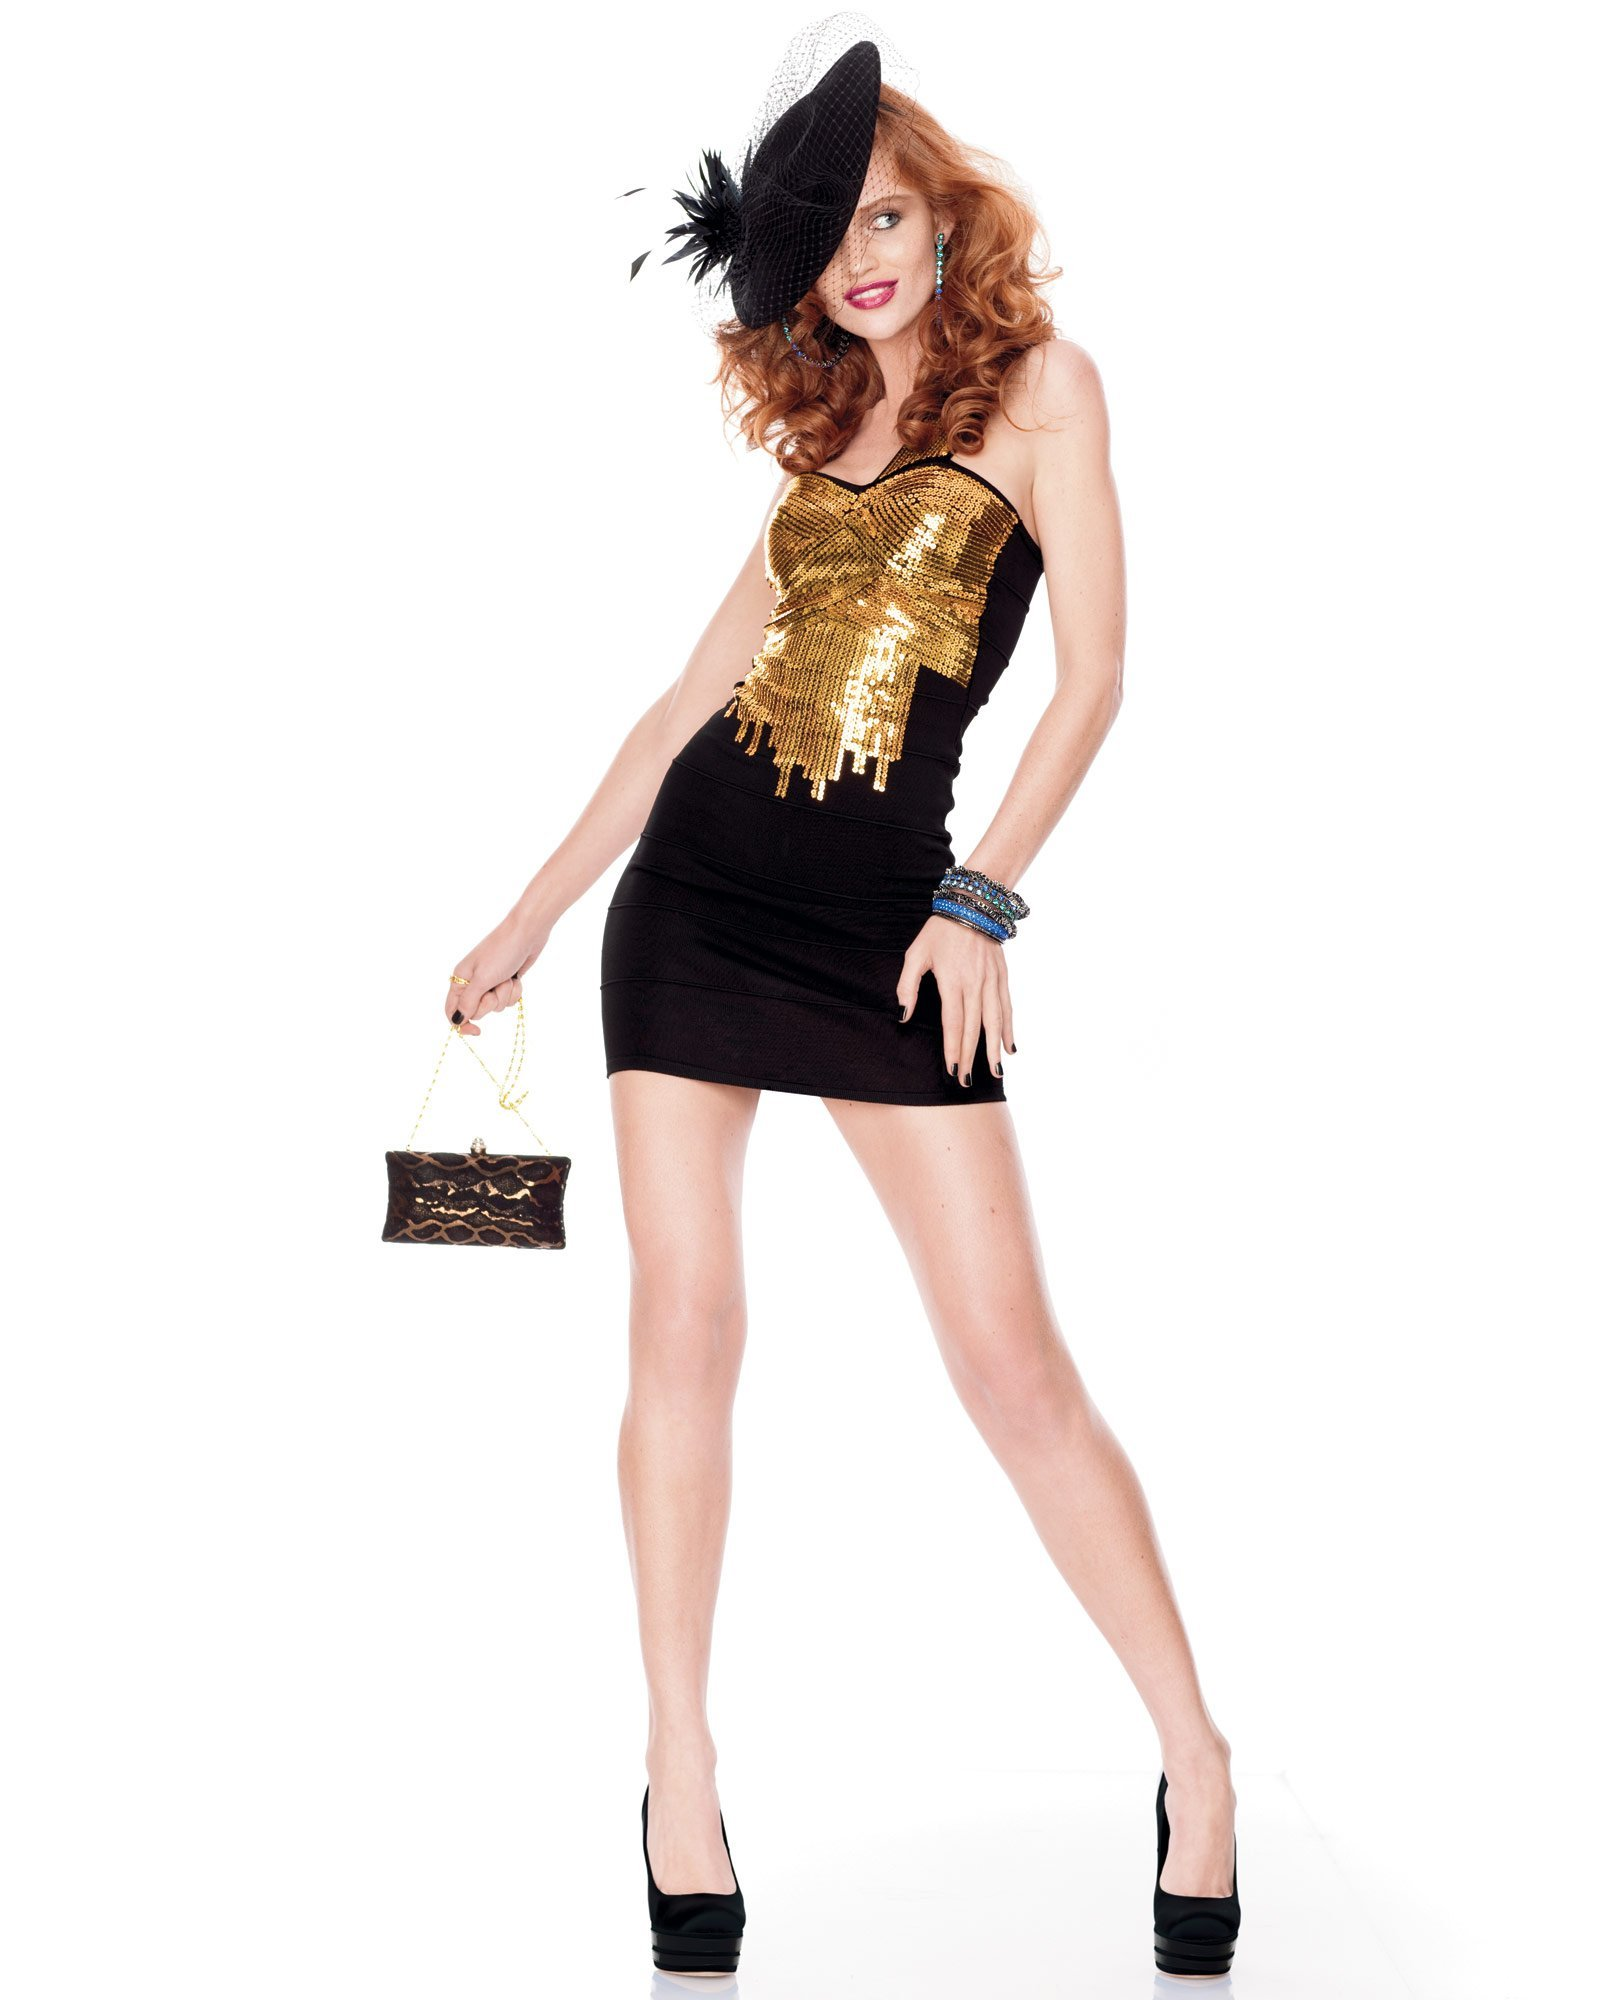 BEBE Oct 2011 Own The Night Look Book 7